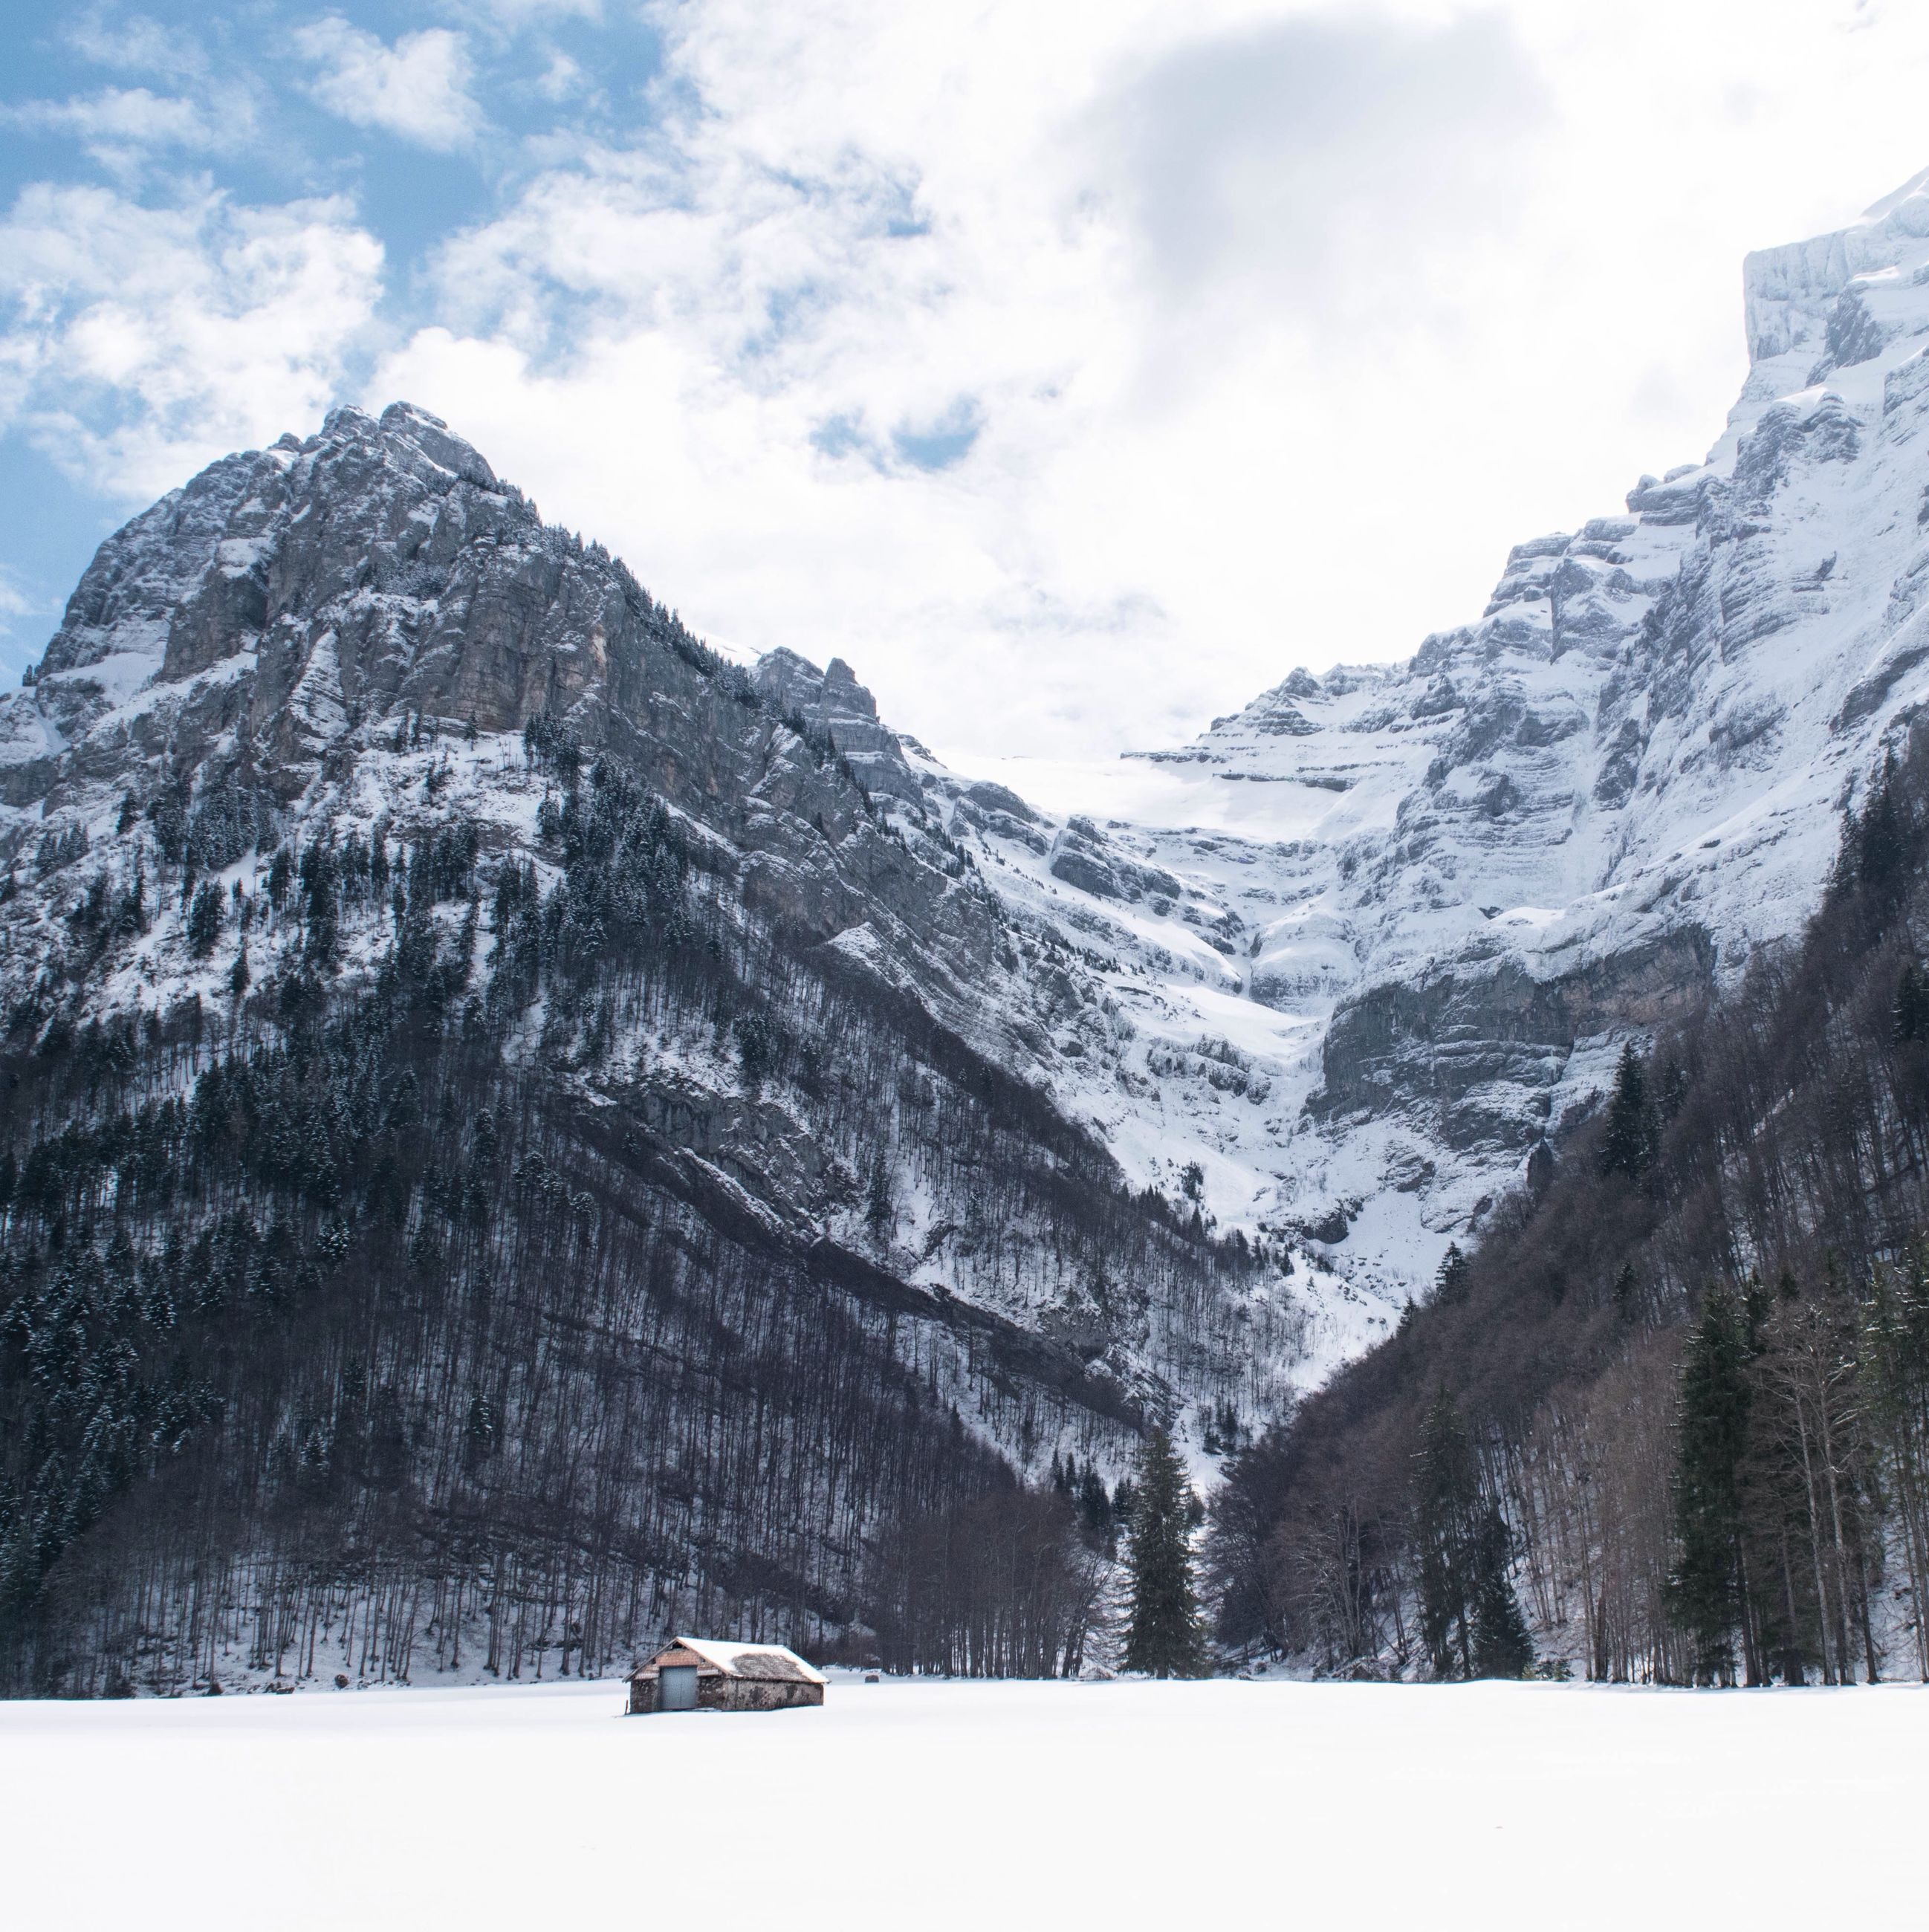 snow, winter, cold temperature, mountain, season, weather, tranquil scene, snowcapped mountain, scenics, covering, sky, tranquility, beauty in nature, mountain range, nature, landscape, frozen, tree, white color, cloud - sky